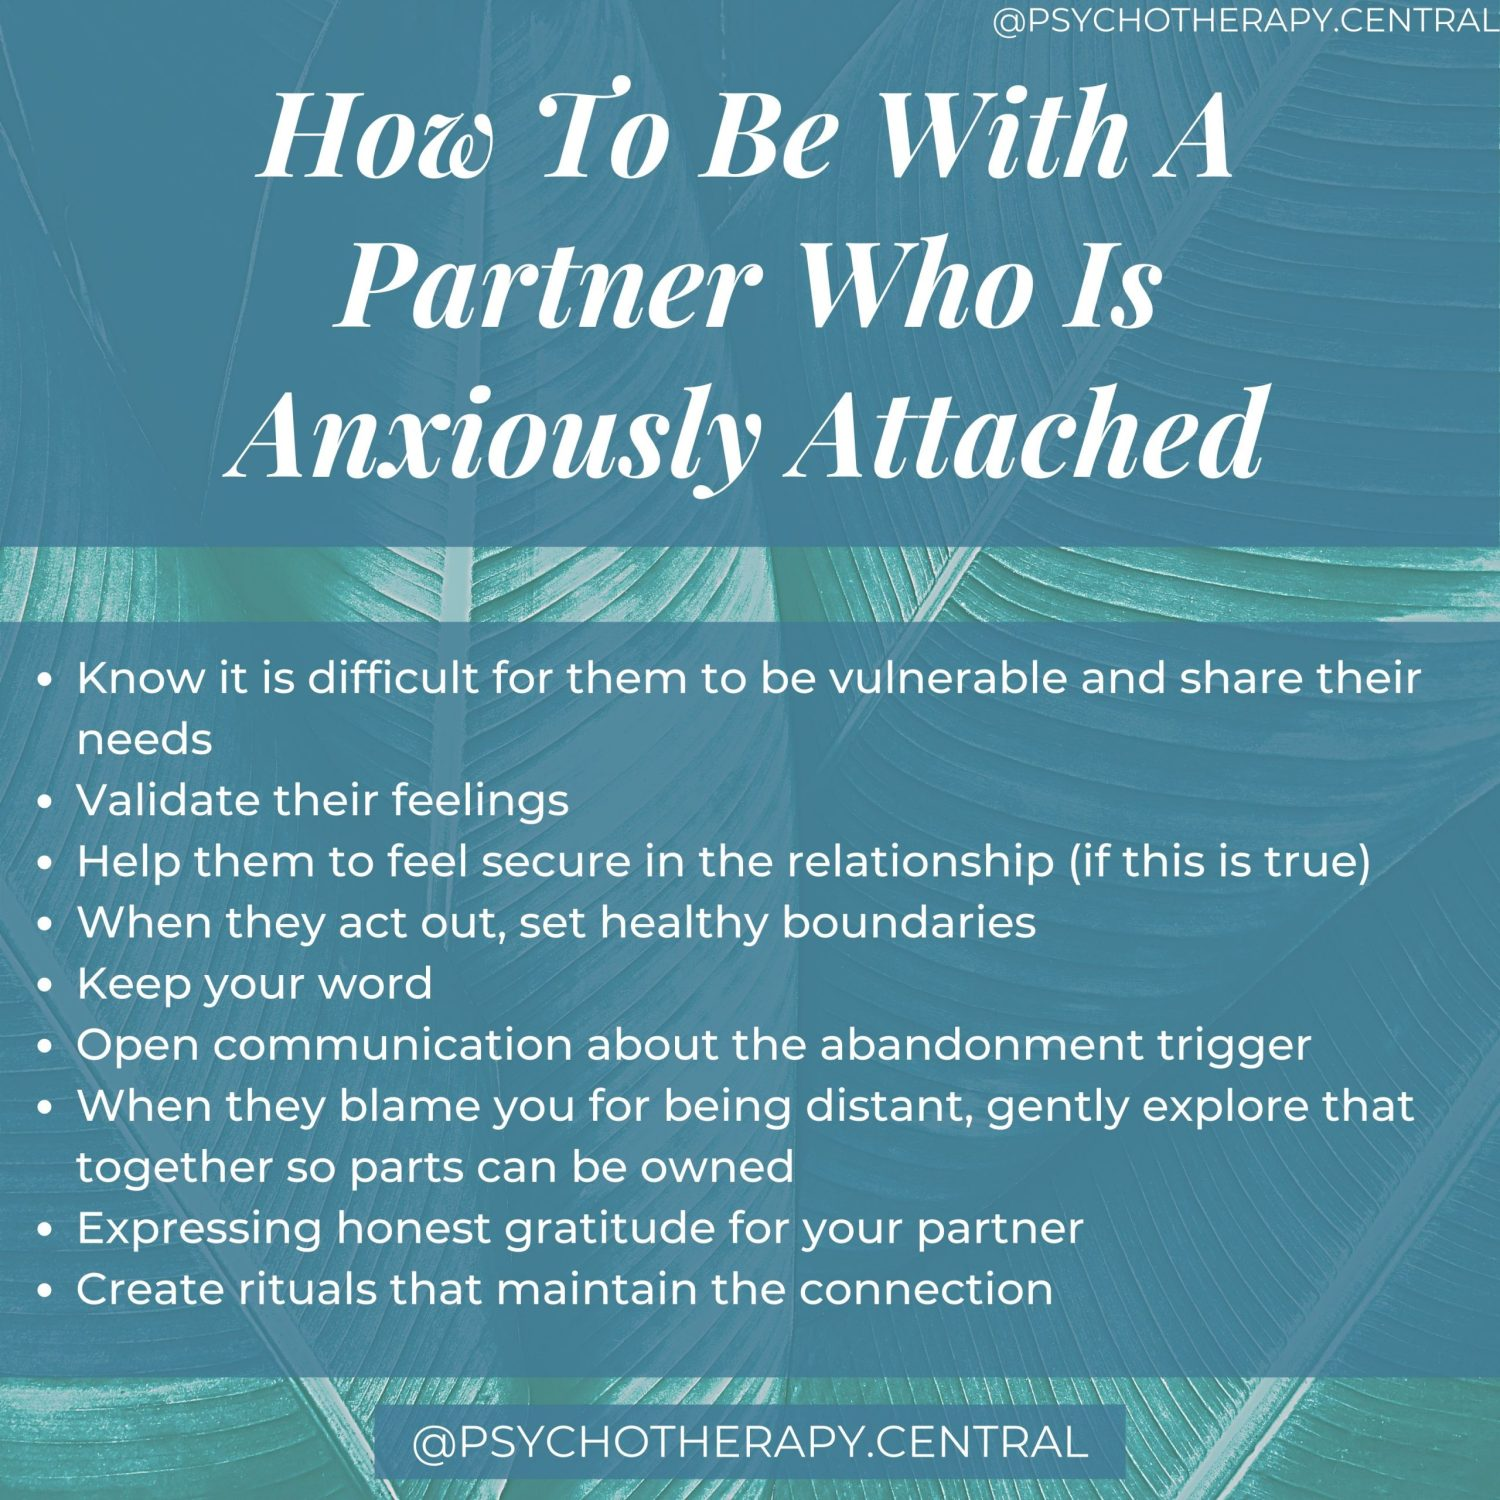 How To Be With A Partner Who Is Anxiously Attached Know it is difficult for them to be vulnerable and share their needs Validate their feelings Help them to feel secure in the relationship (if this is true) When they act out, set healthy boundaries Keep your word Open communication about the abandonment trigger When they blame you for being distant, gently explore that together so parts can be owned Expressing honest gratitude for your partner Create rituals that maintain the connection